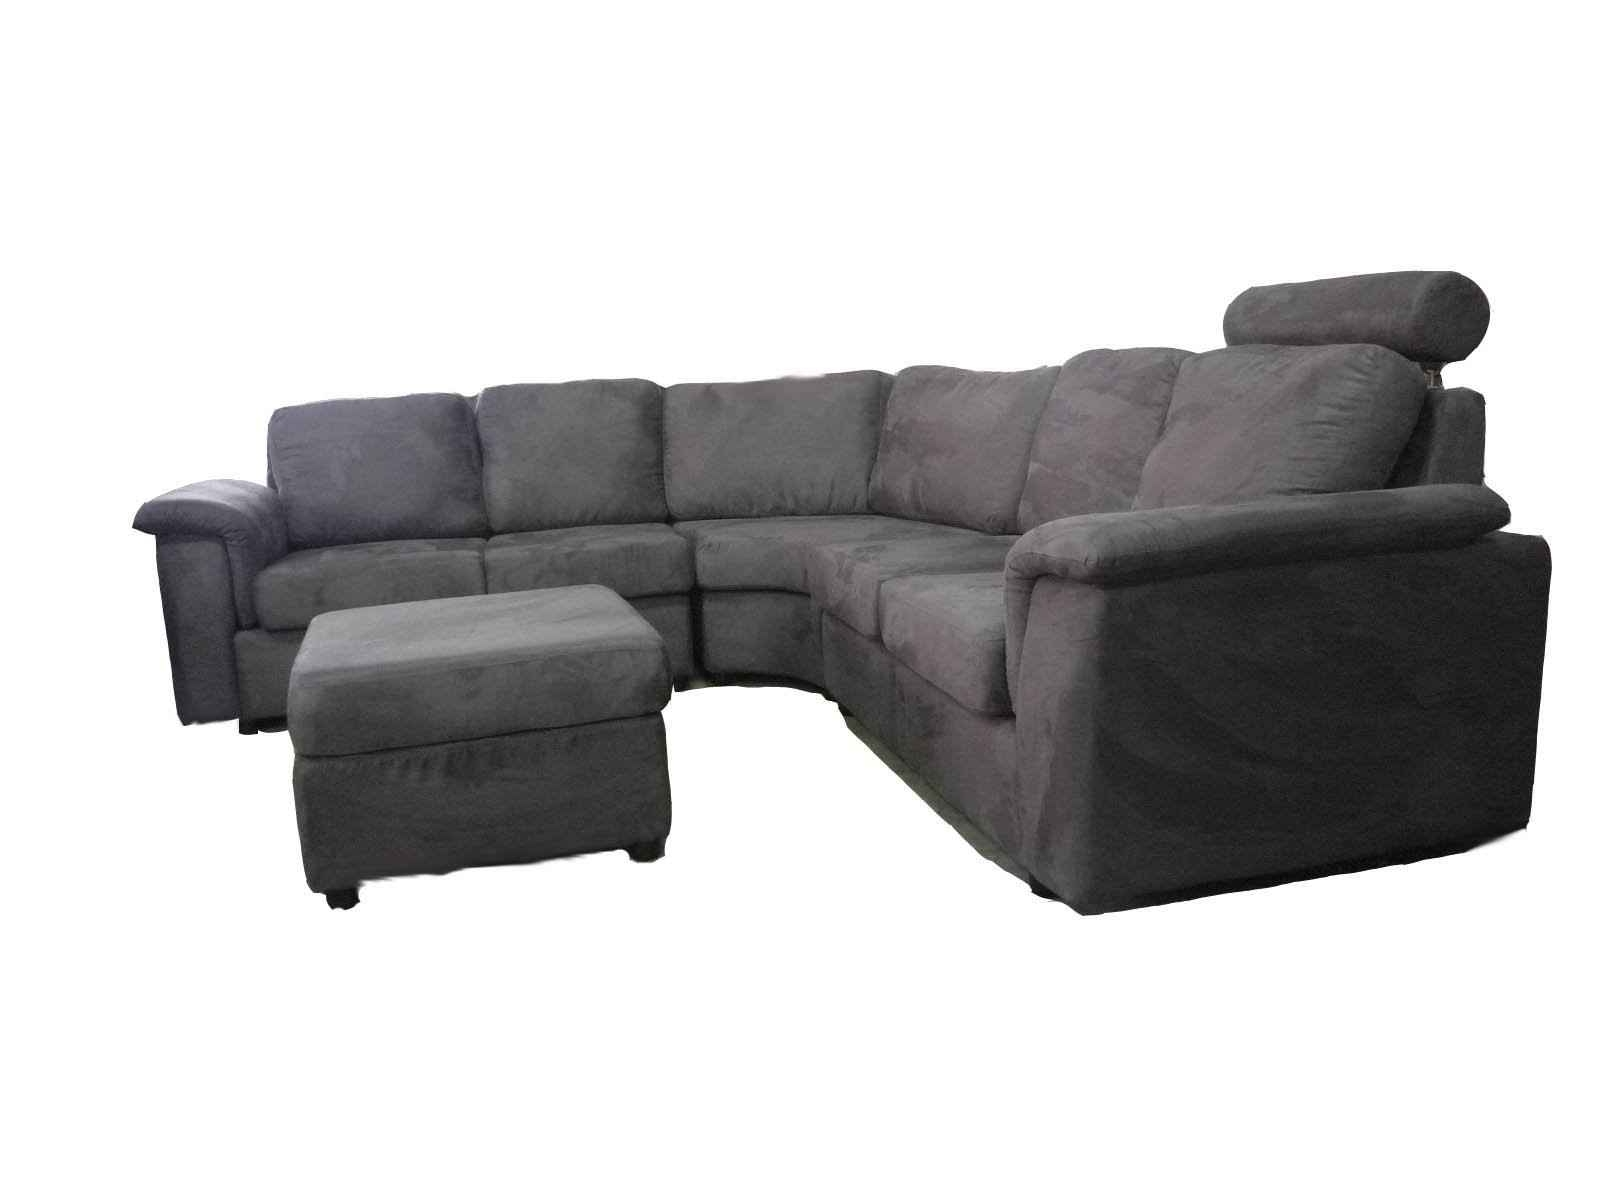 Sectional Sofas At Ikea Pertaining To 2018 Beautiful Sectional Sofas Ikea 60 For Living Room Sofa Ideas With (View 17 of 20)